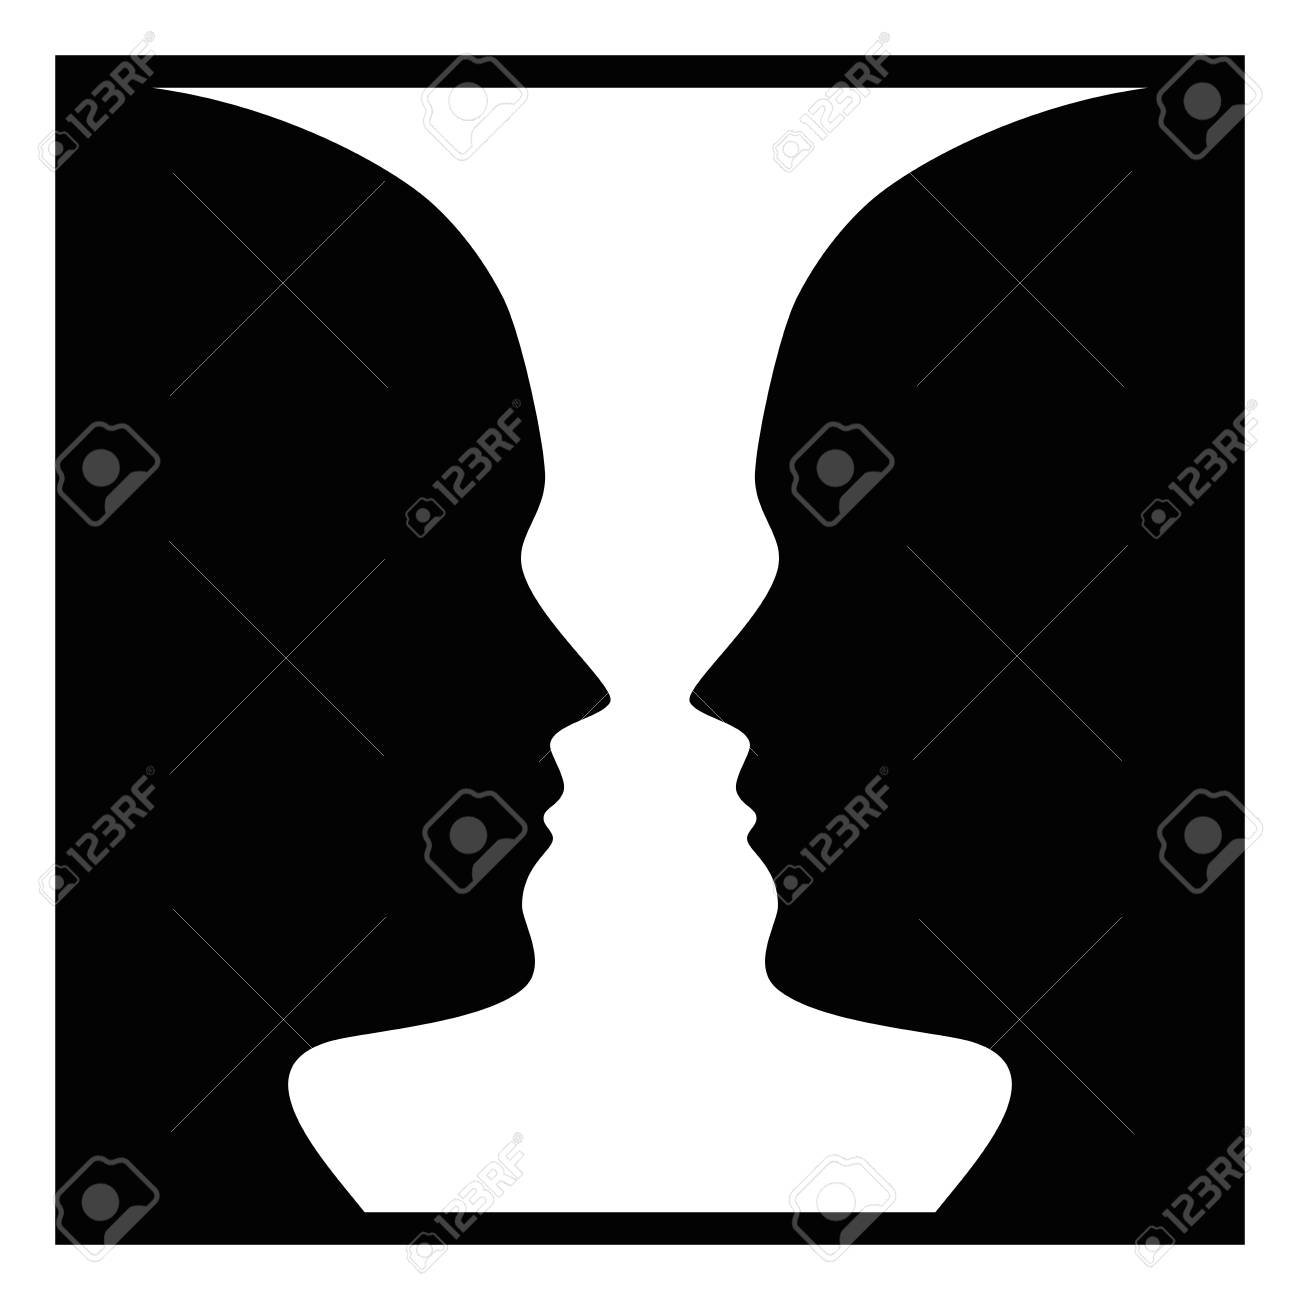 Figure-ground perception, face and vase. Figure-ground organization. Perceptual grouping. In Gestalt Psychology known as identifying a figure from background. Isolated illustration over white. Vector. - 104926913